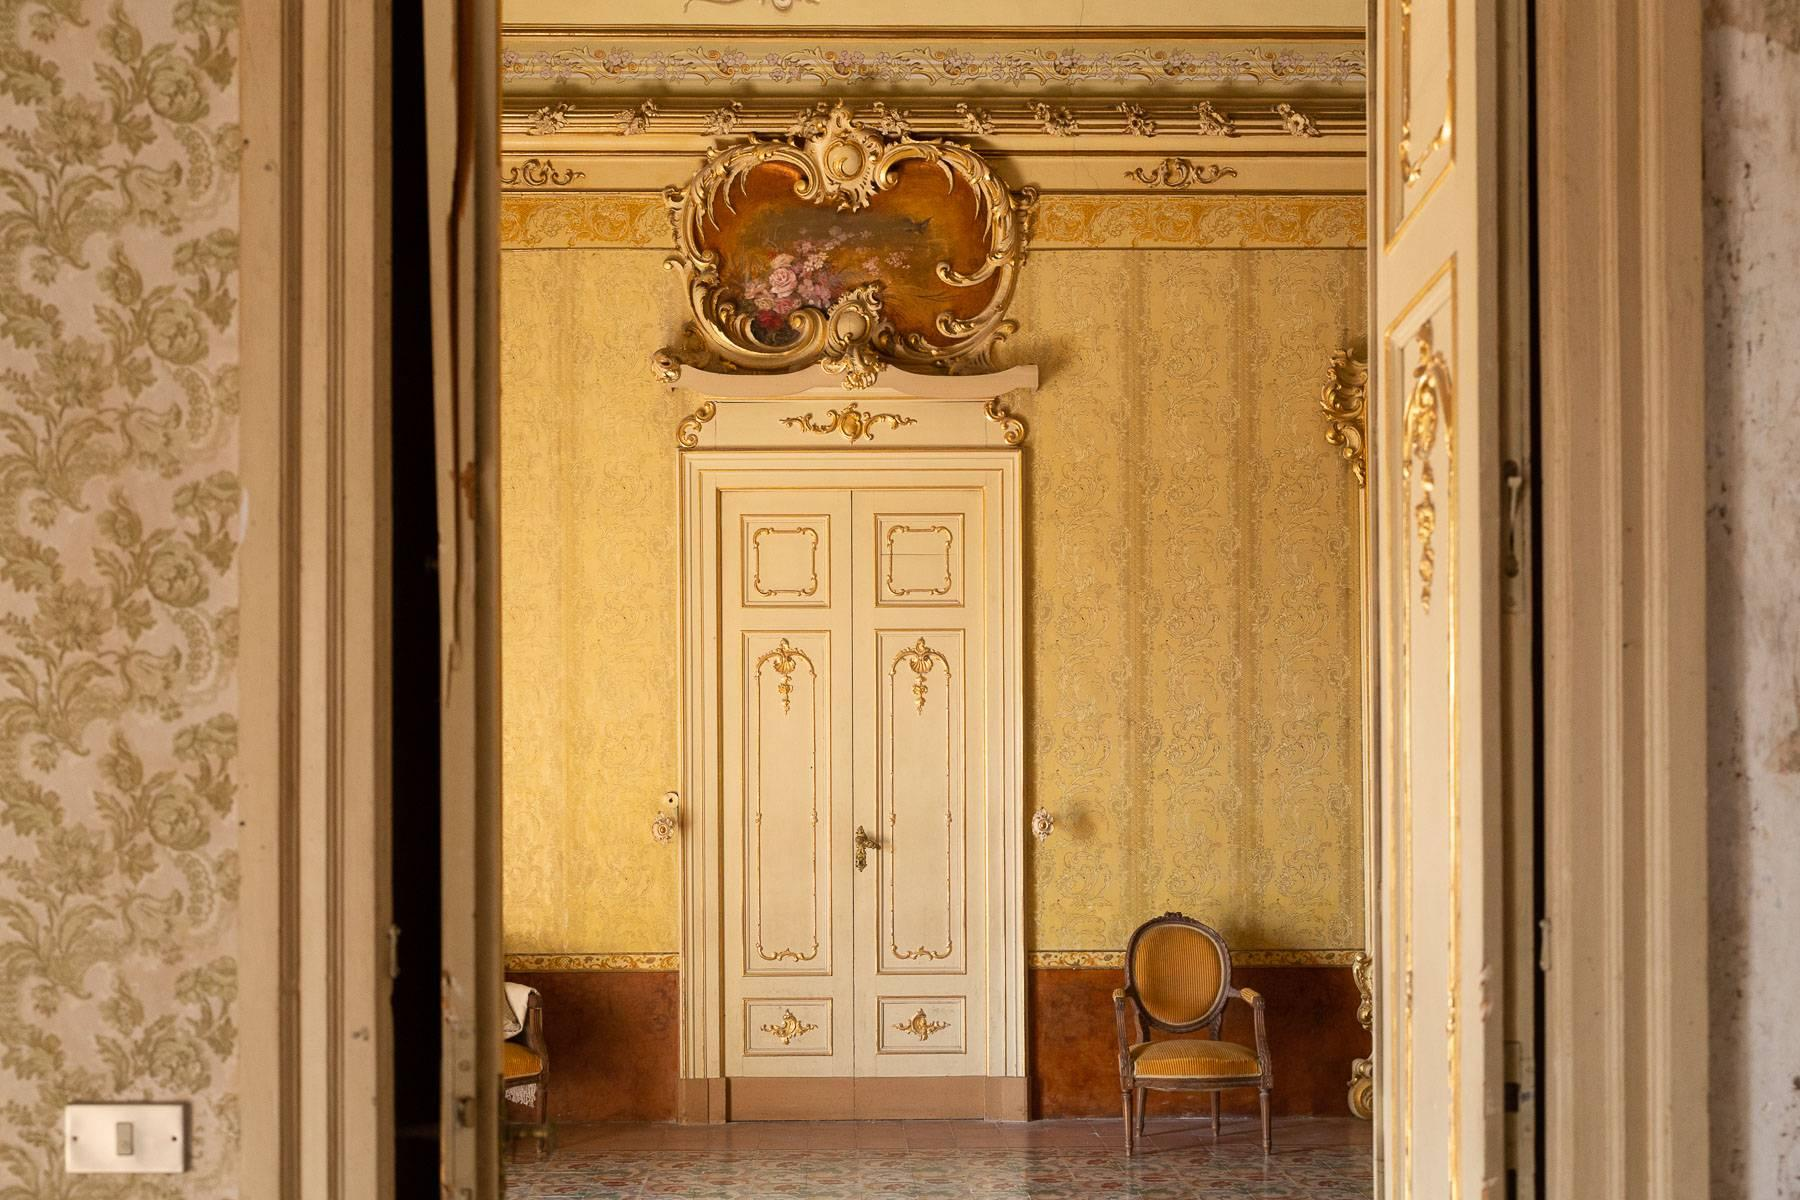 Noble Palace in Palazzolo Acreide - 11